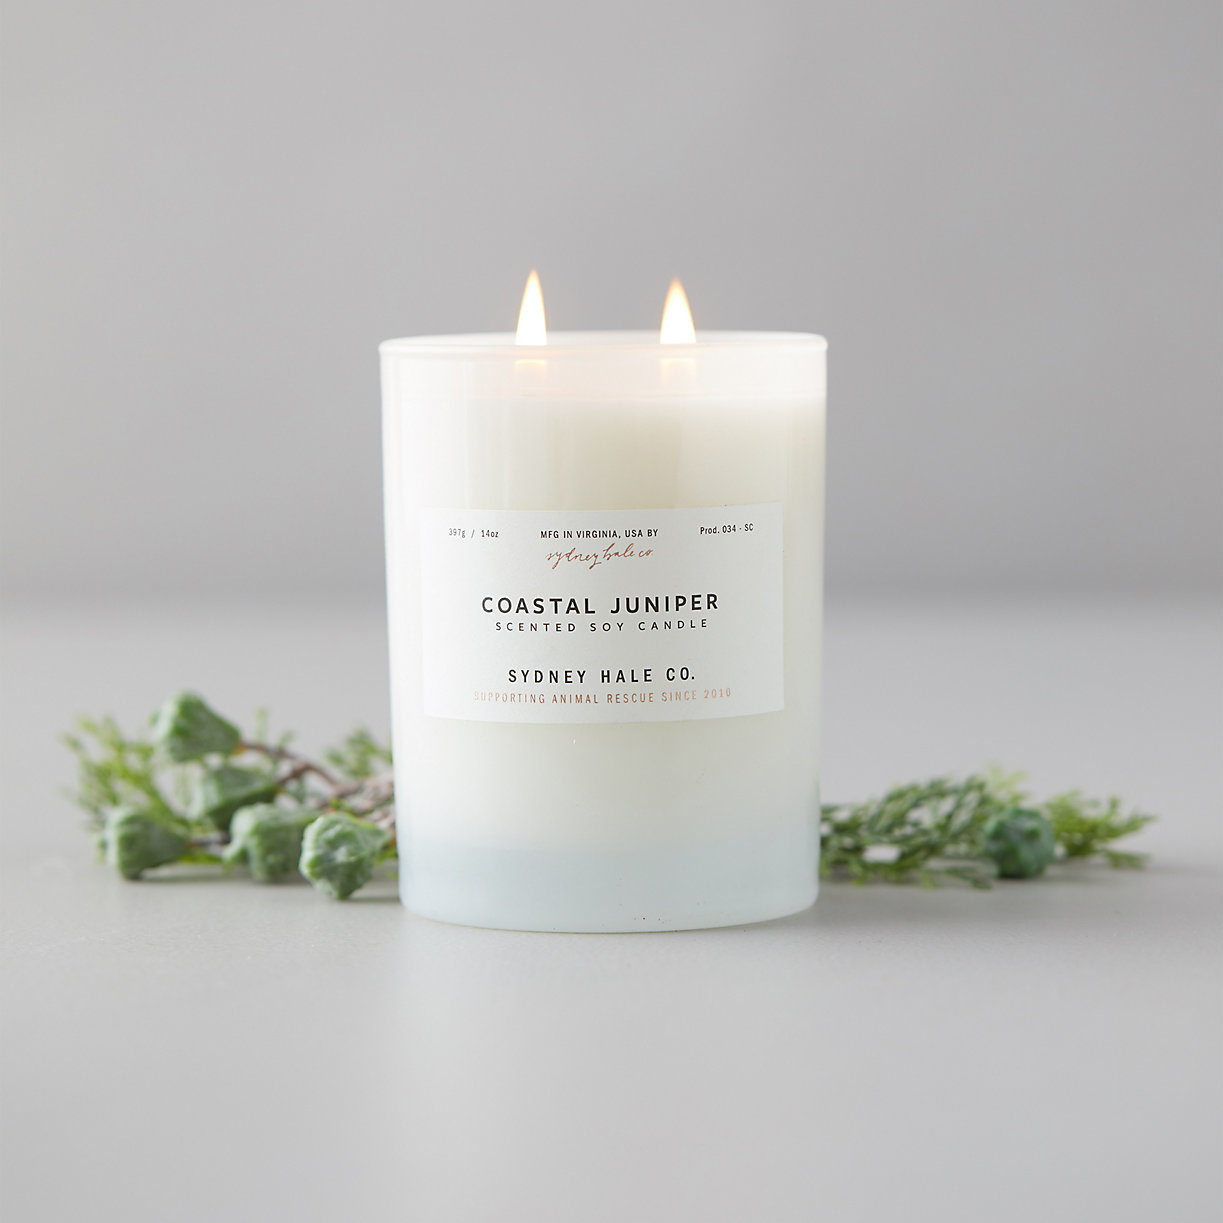 Sydney Hale Co Coastal Juniper Candle